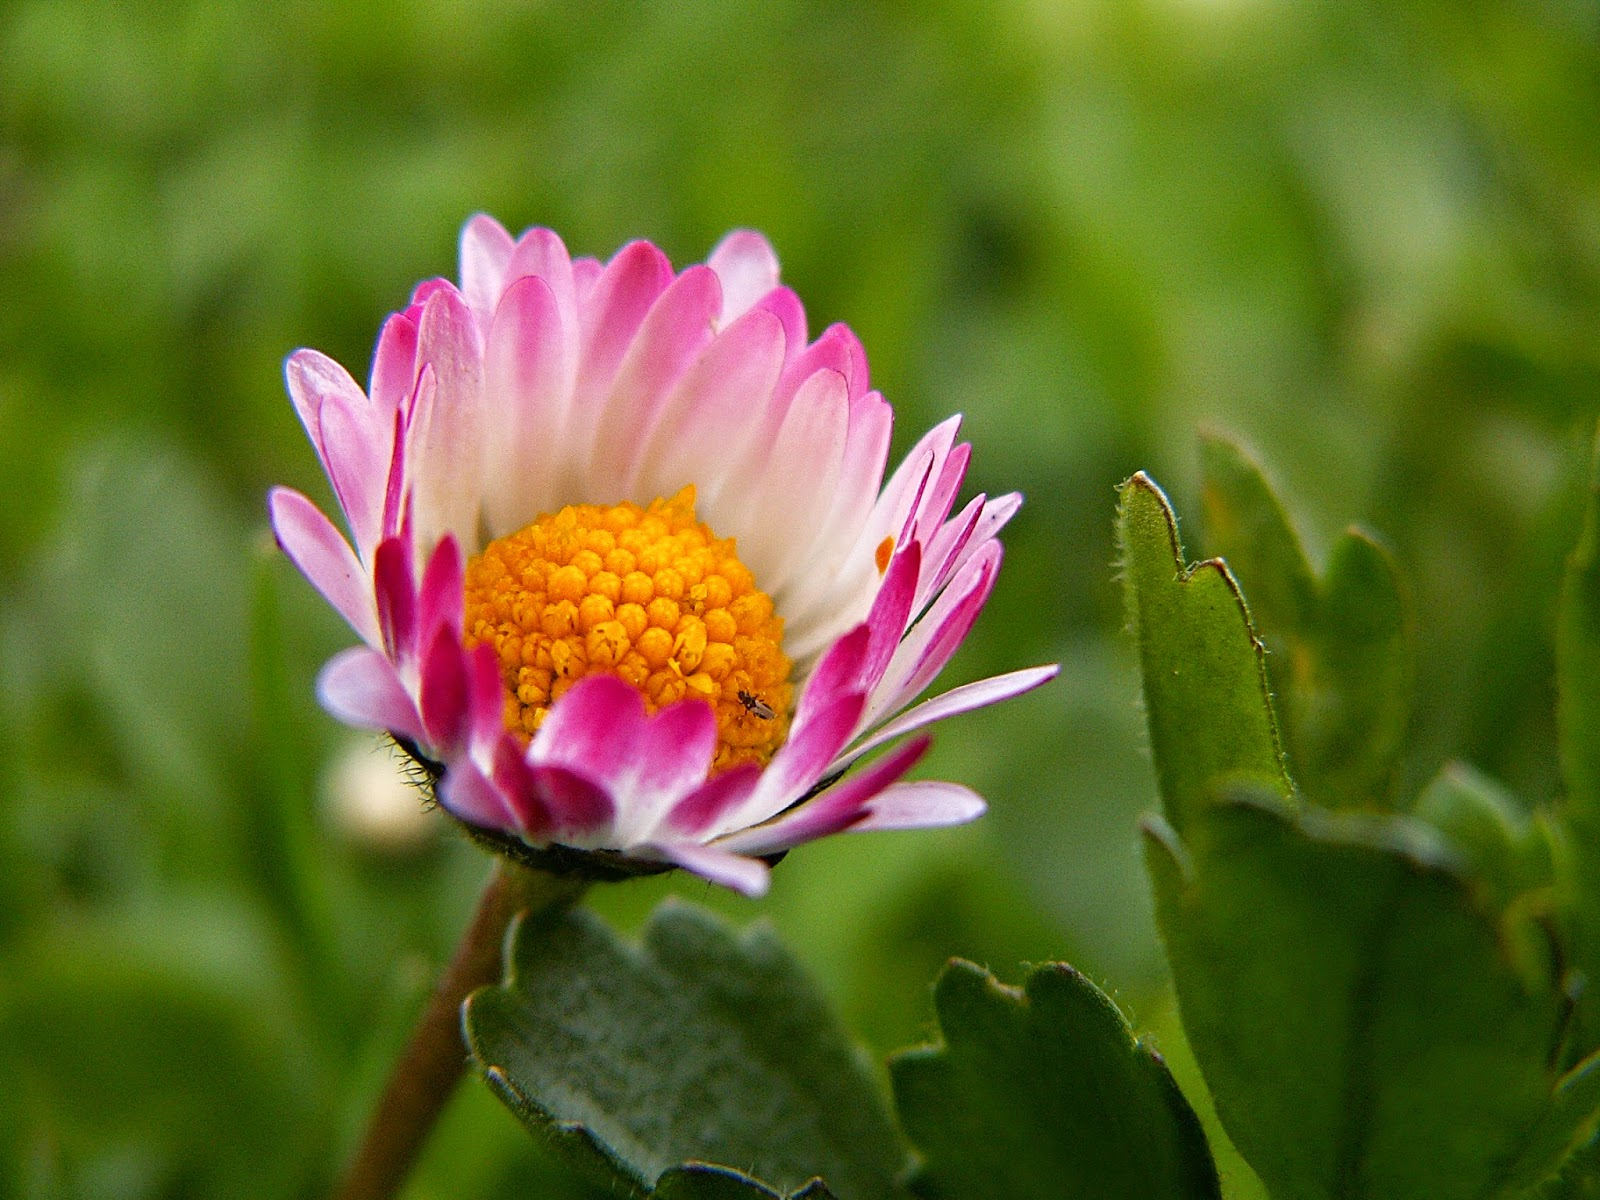 Daisy Flower Petals Hd Wallpapers